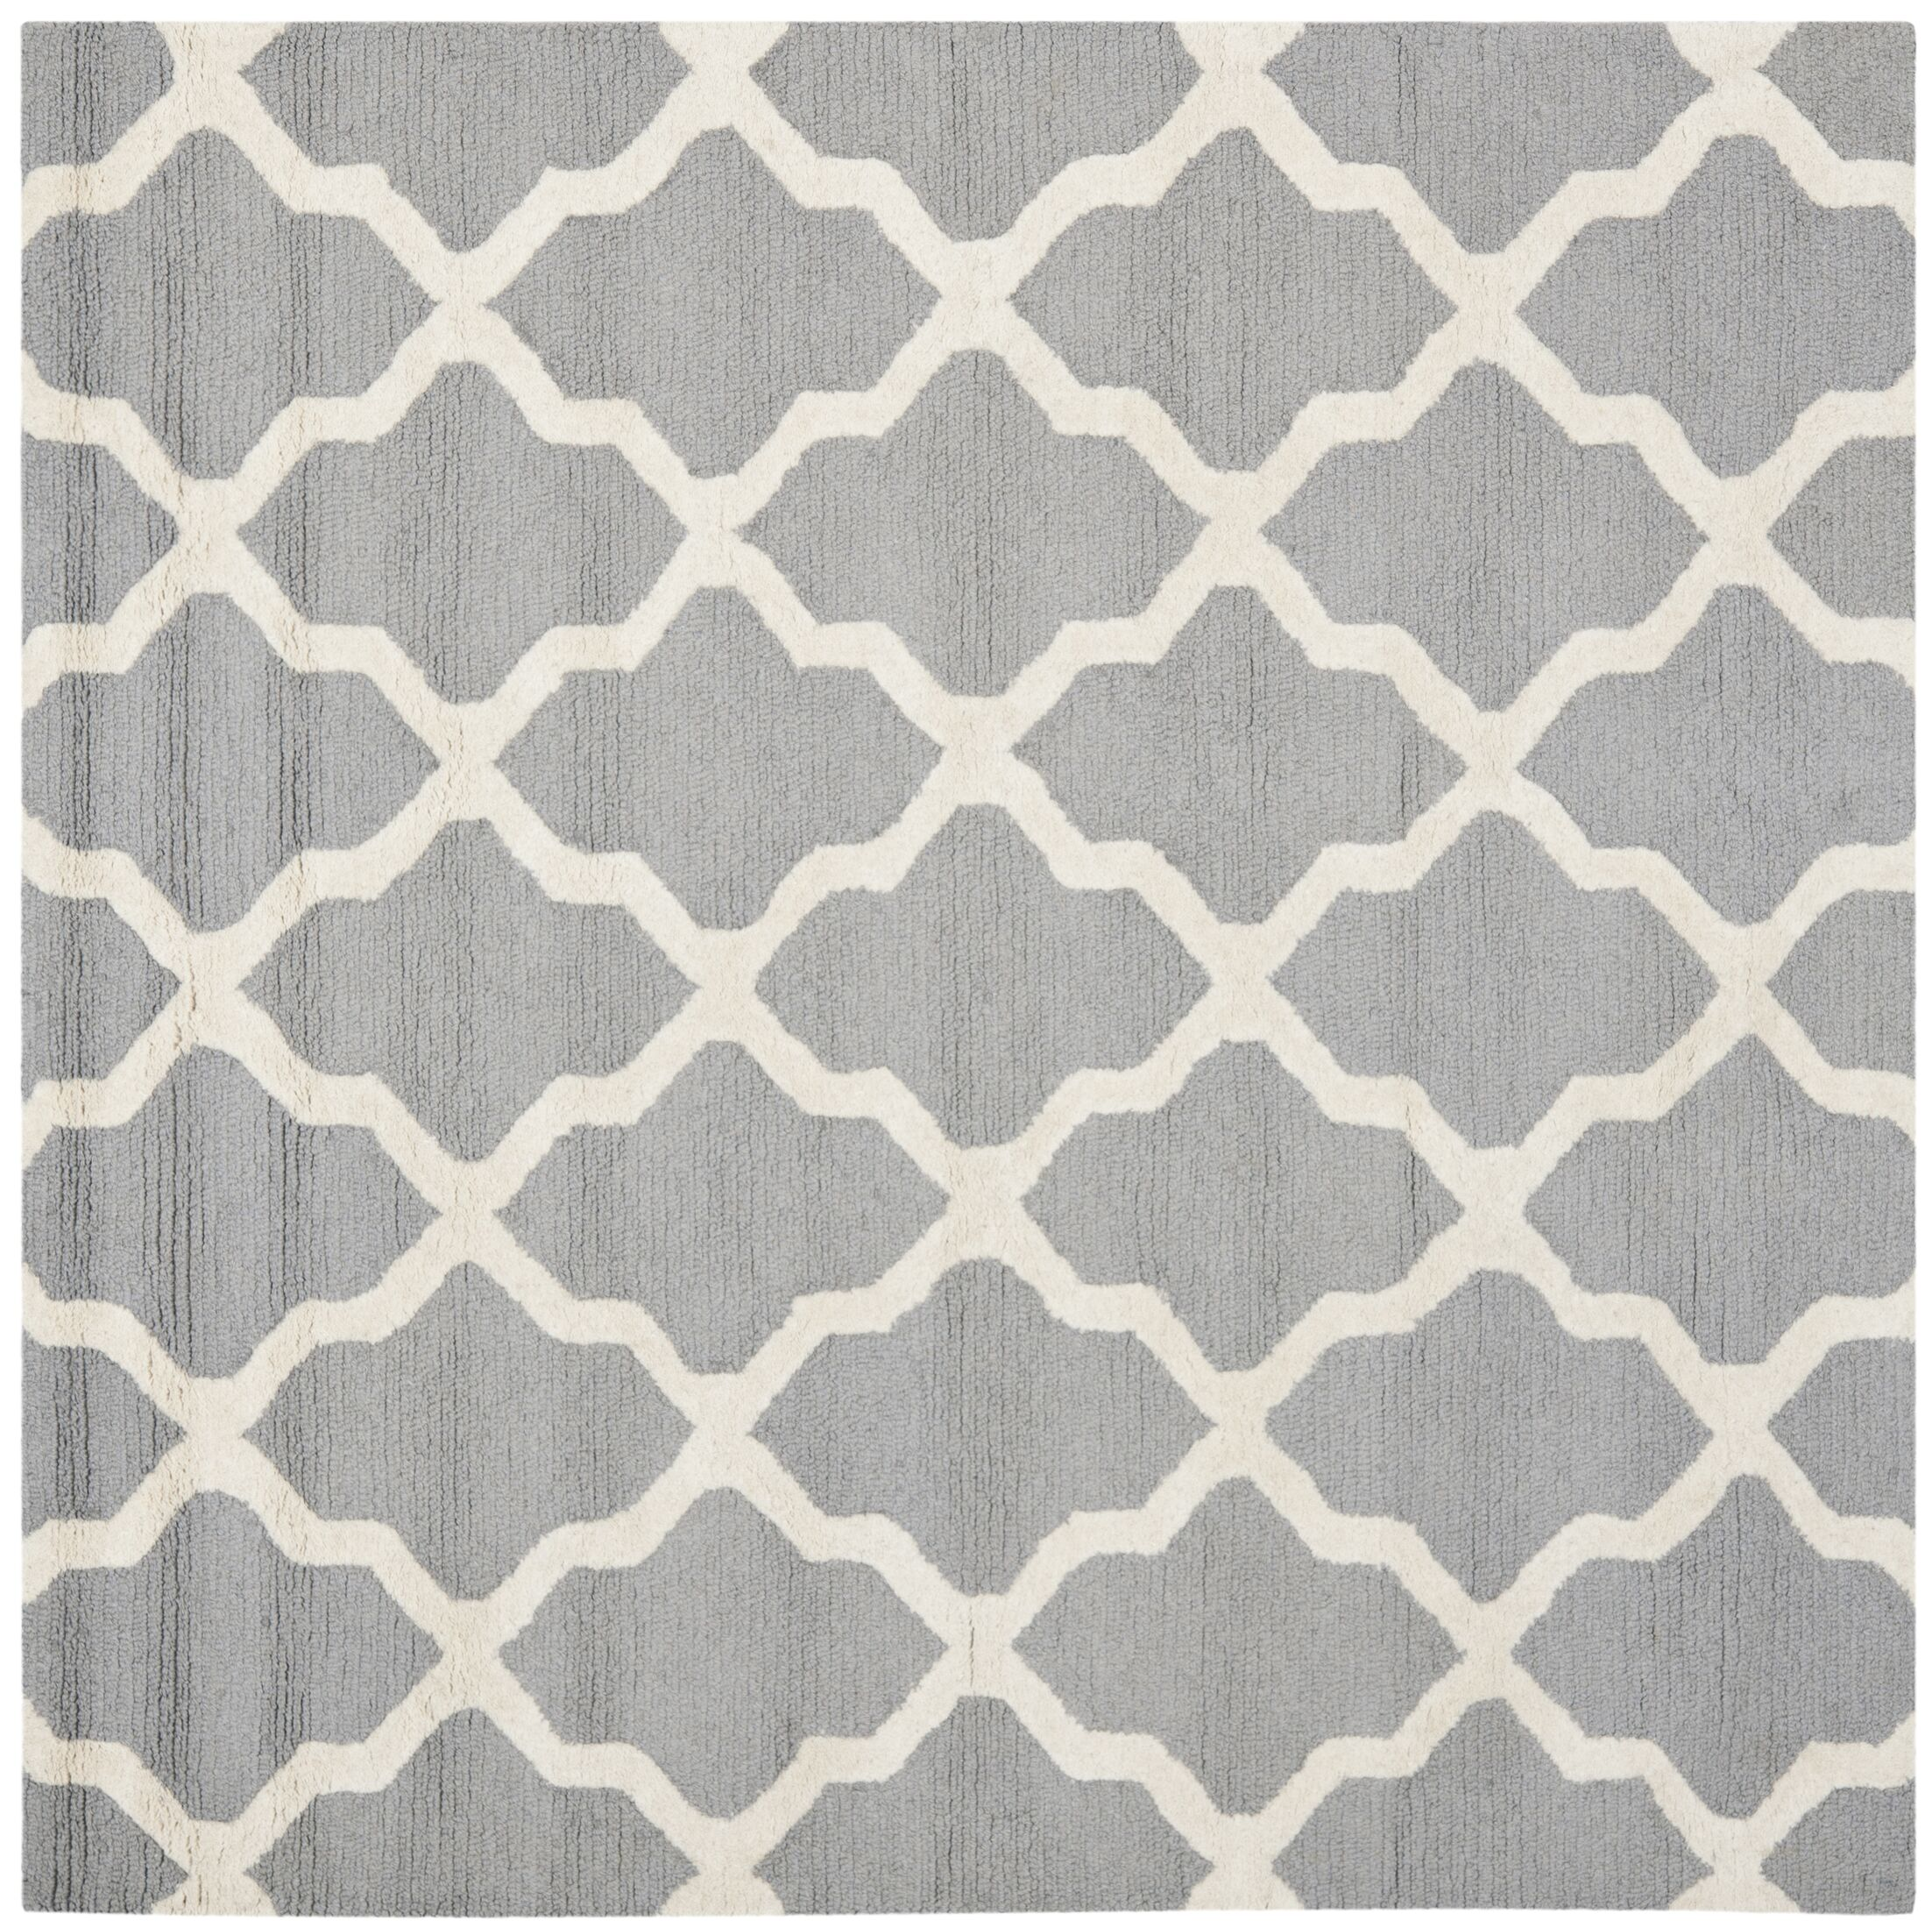 Sugar Pine Hand-Tufted Gray Area Rug Rug Size: Square 8' x 8'